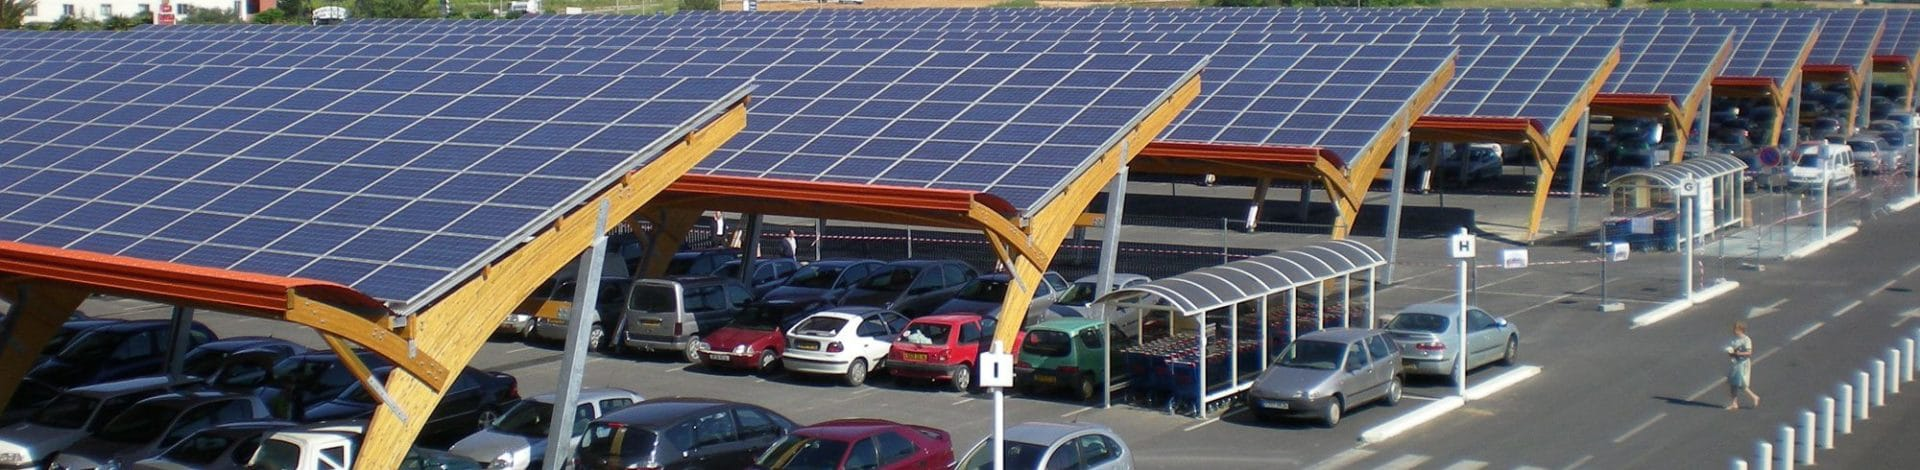 Install photovoltaic station on parking shades